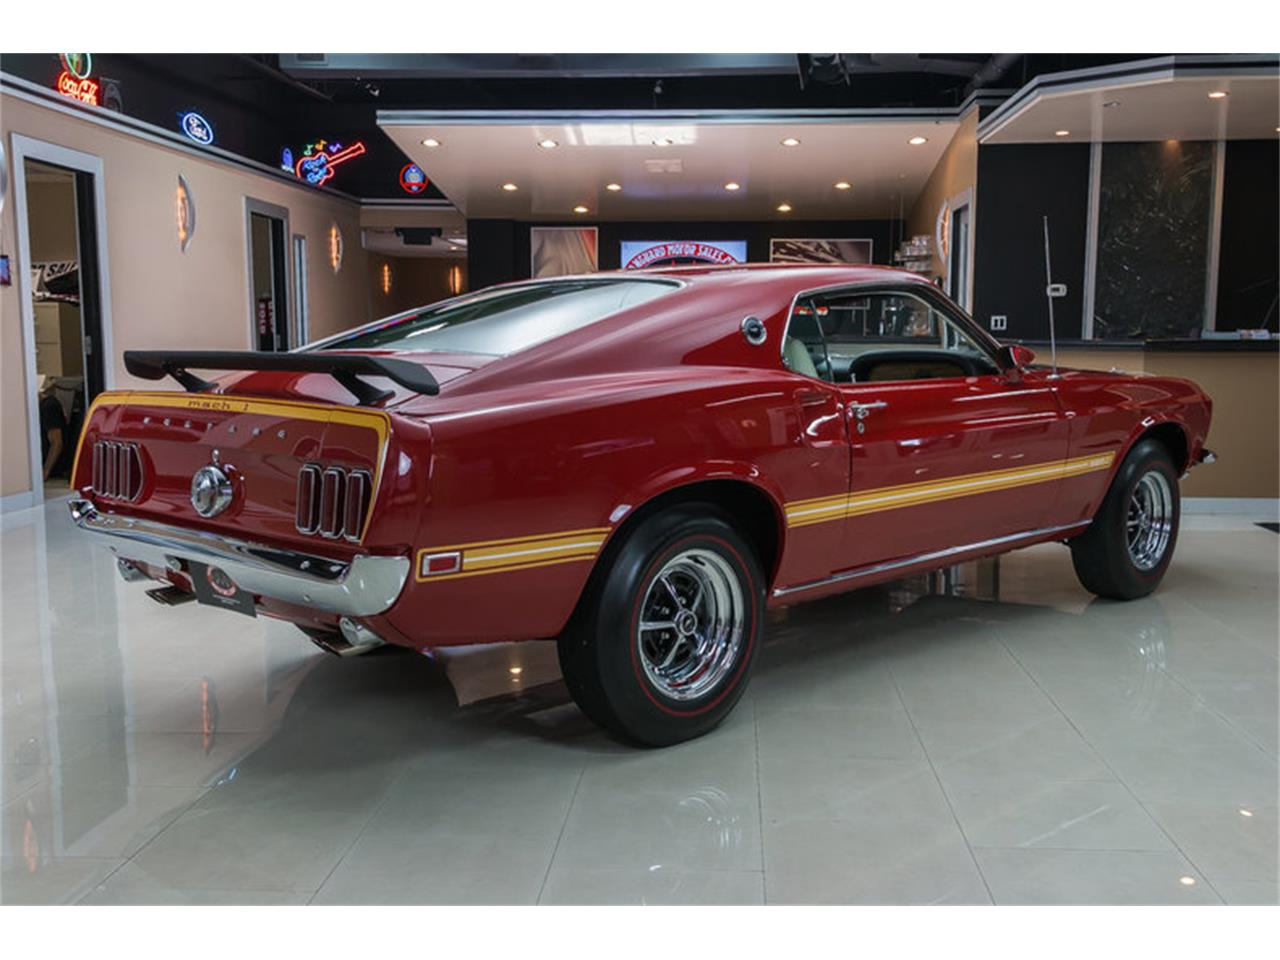 Large Picture of Classic '69 Ford Mustang Mach 1 S Code located in Plymouth Michigan Offered by Vanguard Motor Sales - IS3G